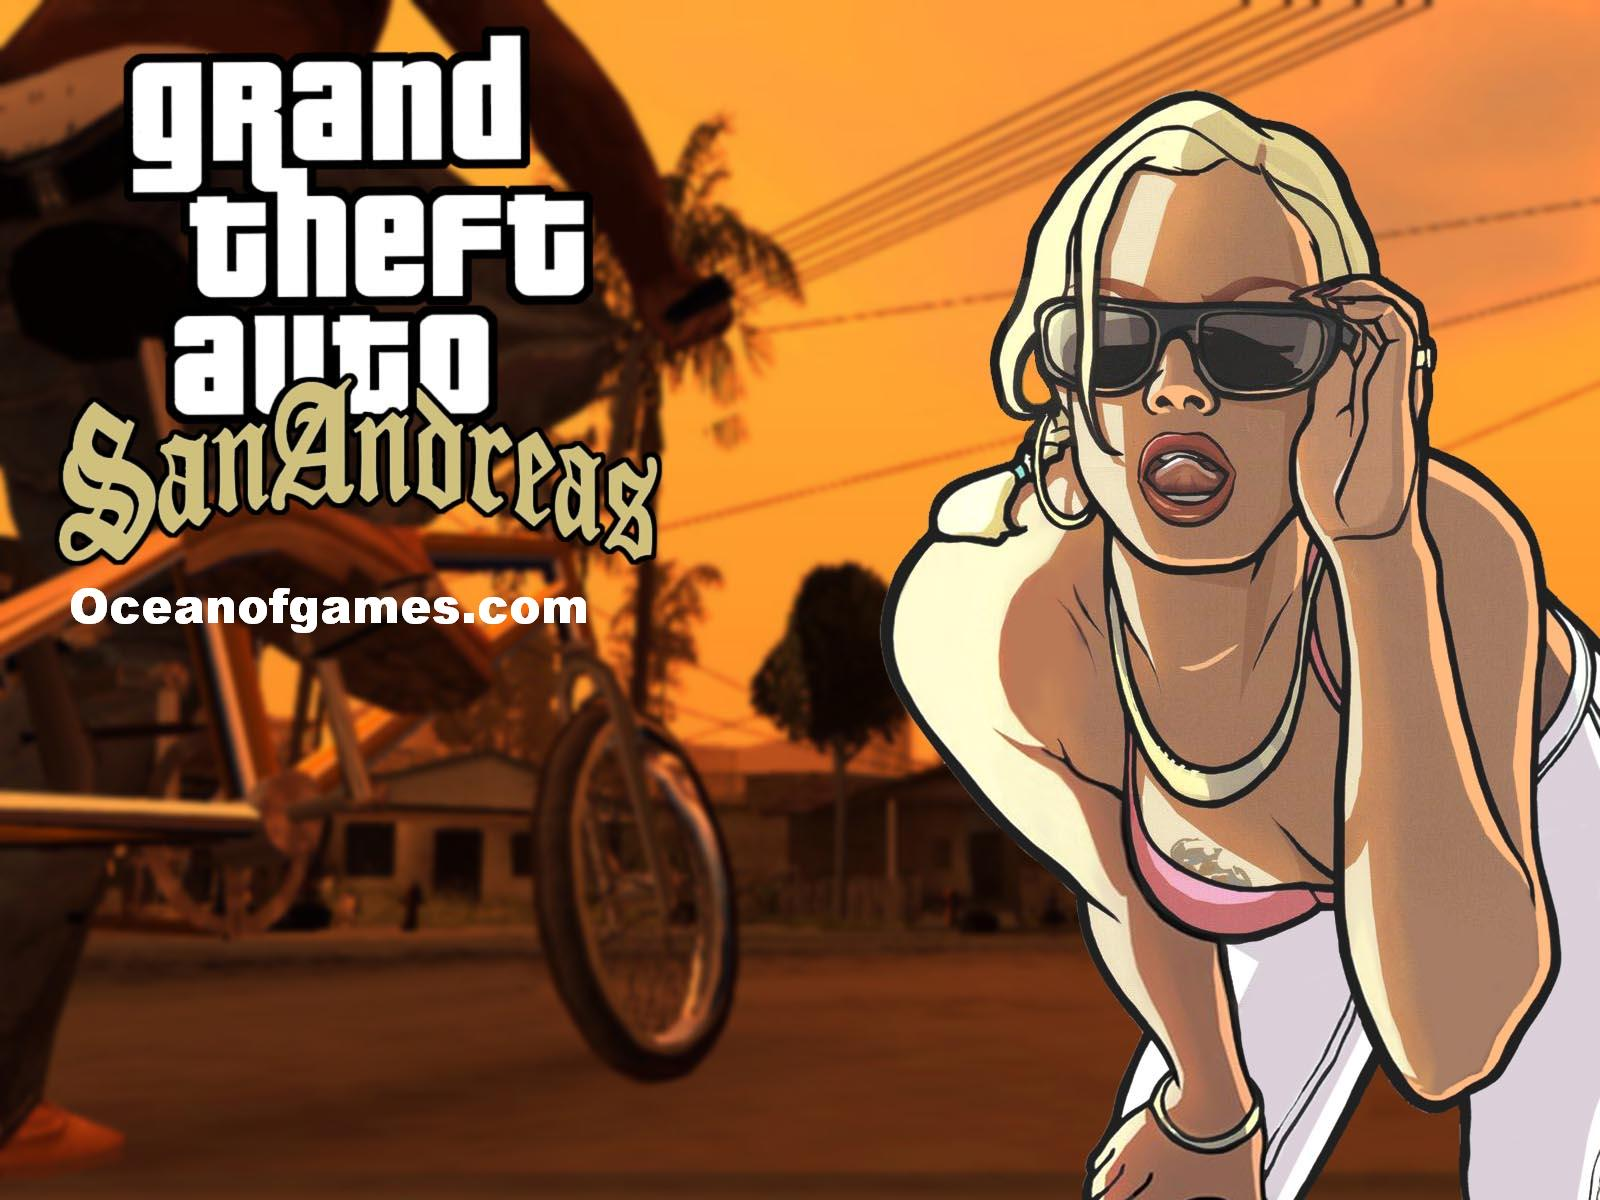 Gta San Andreas Game Free Download, Gta San Andreas Game Free Download